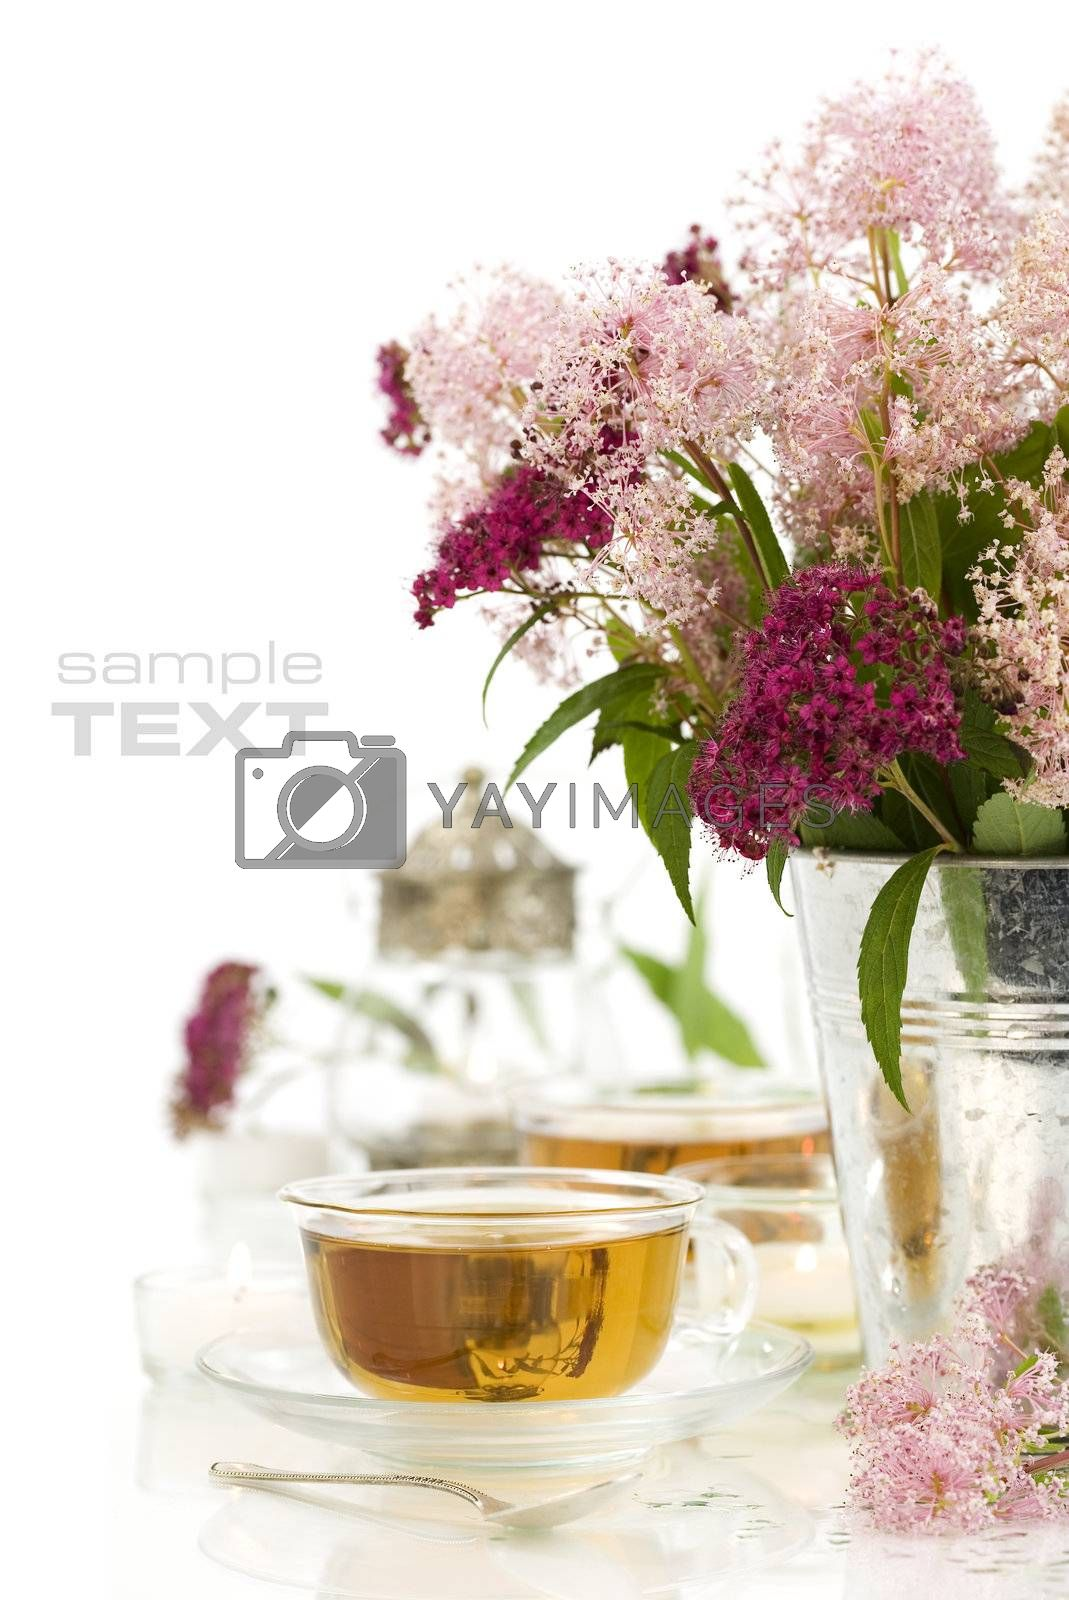 herbal tea, candles and fresh wild flowers over white